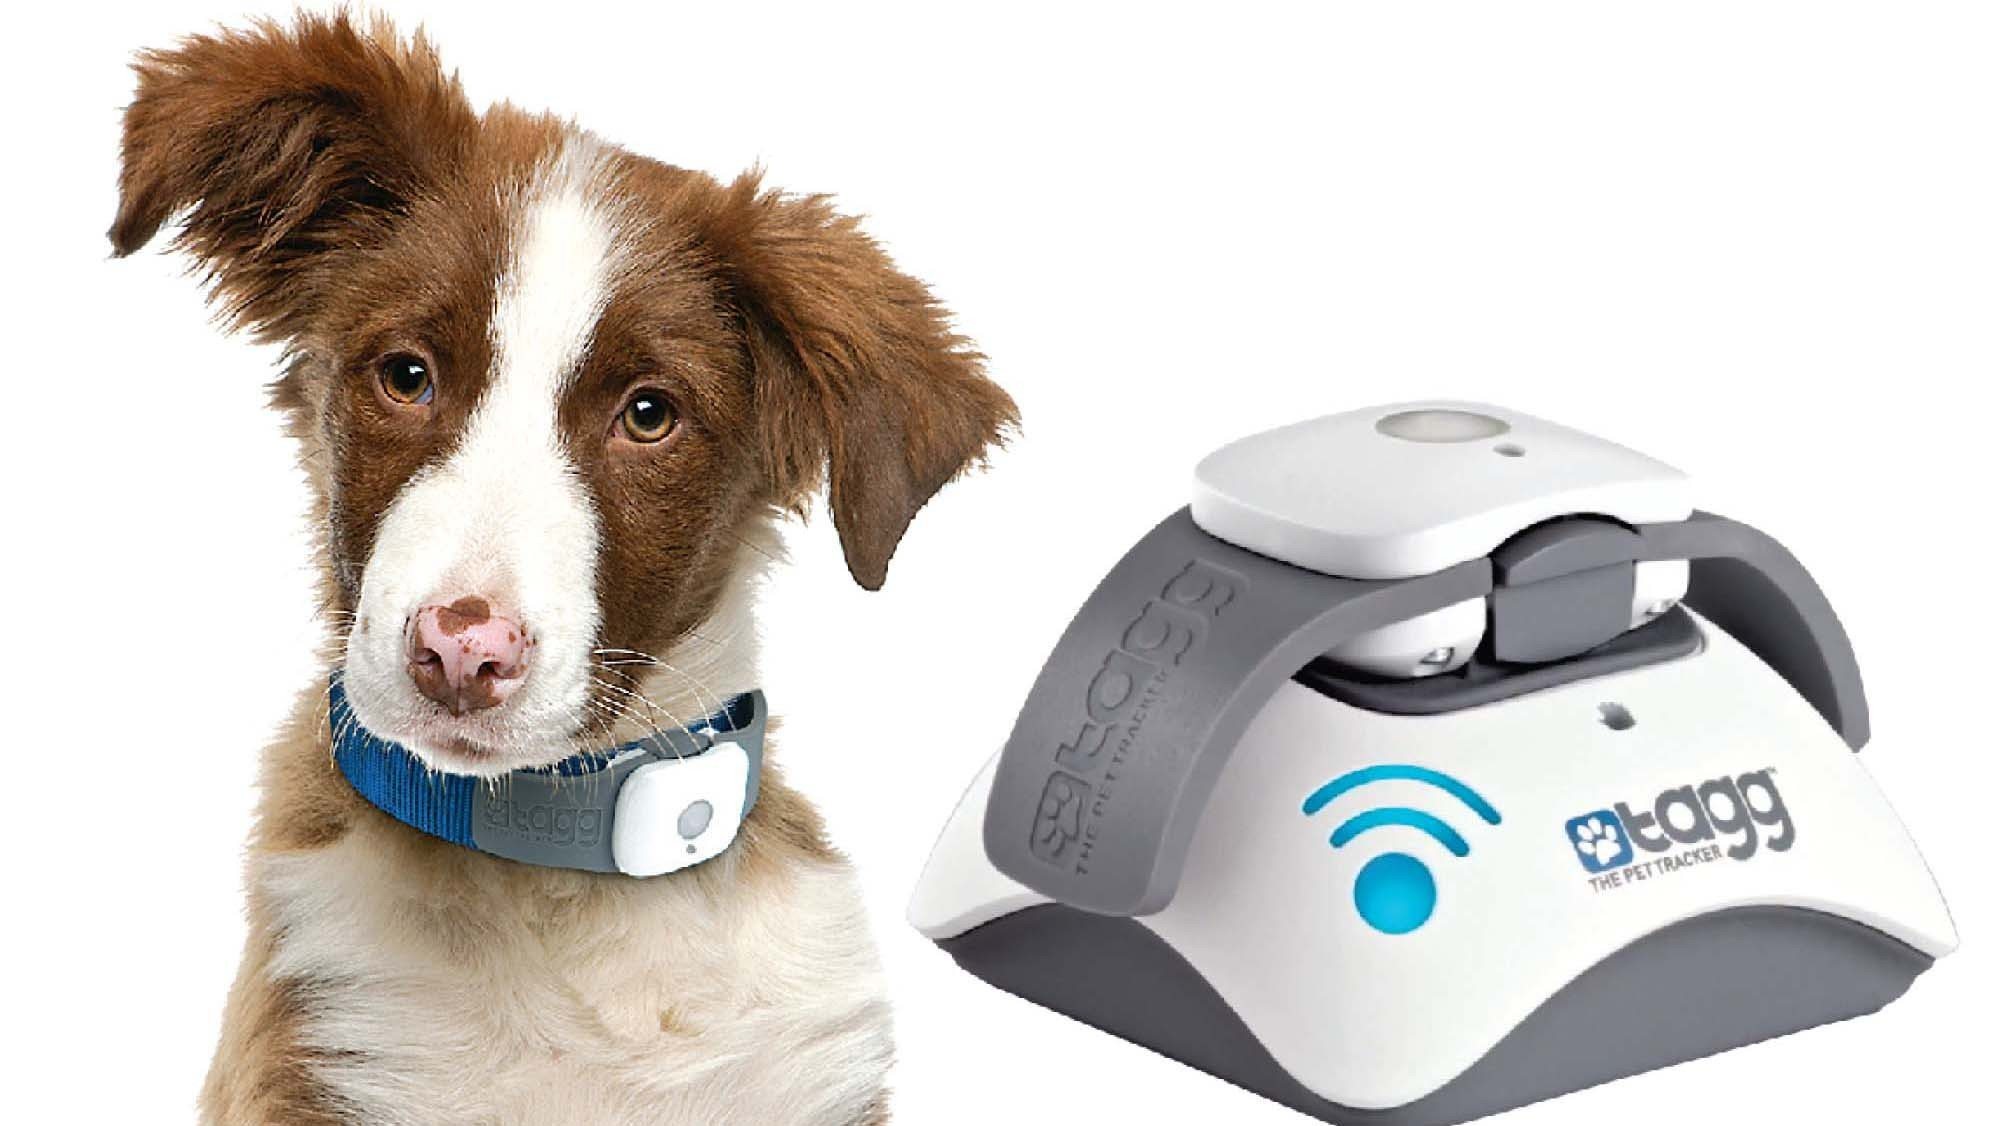 Gadgets to keep an eye on your dog — and your dog's walker